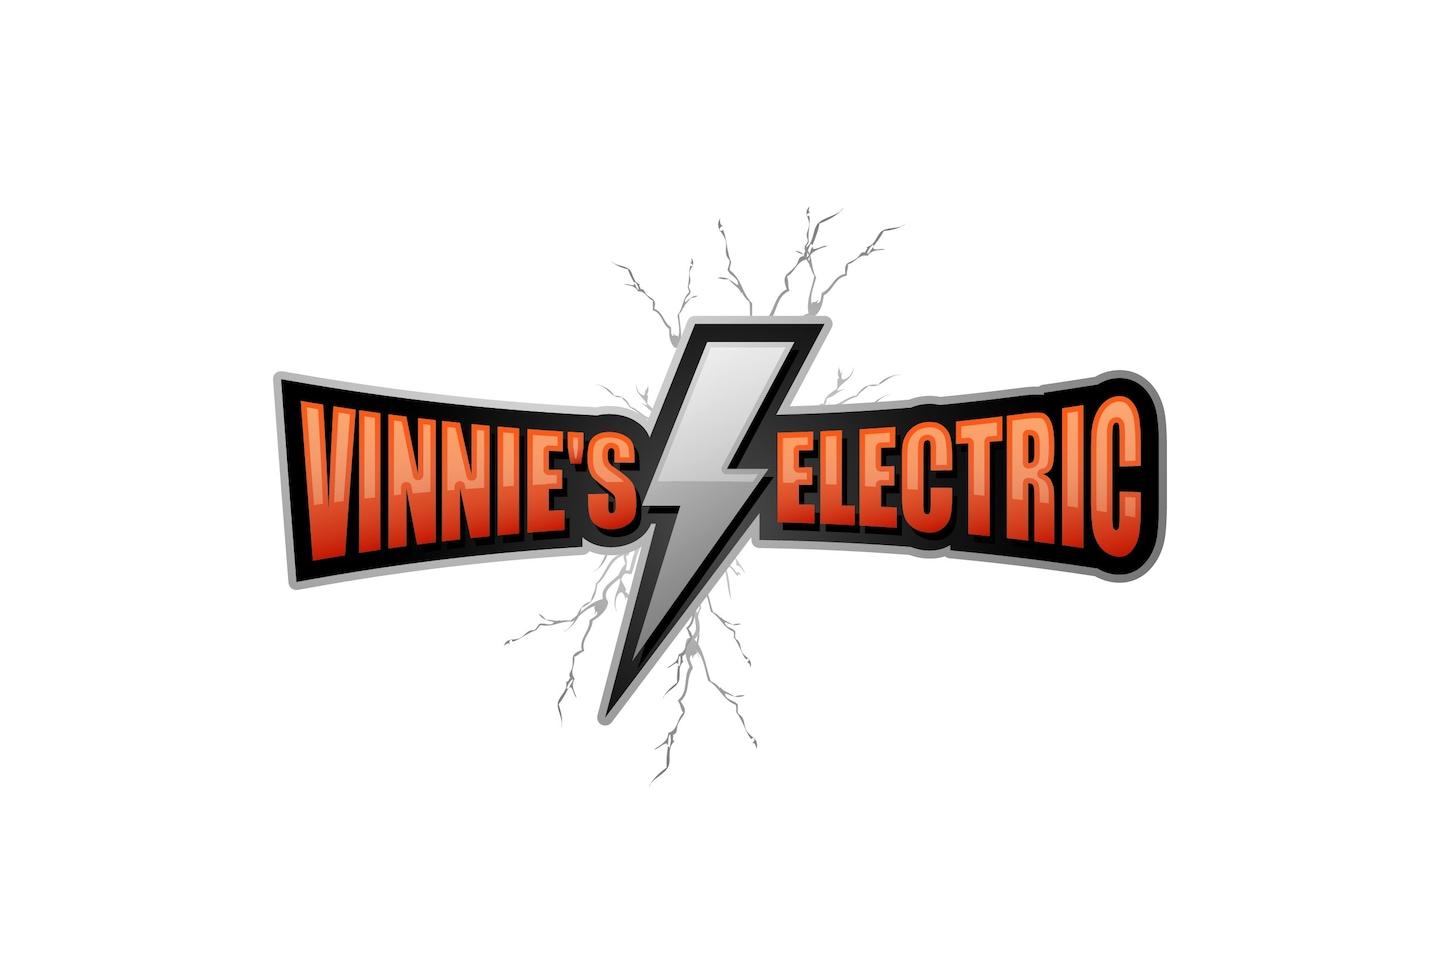 Vinnies Electric LLC